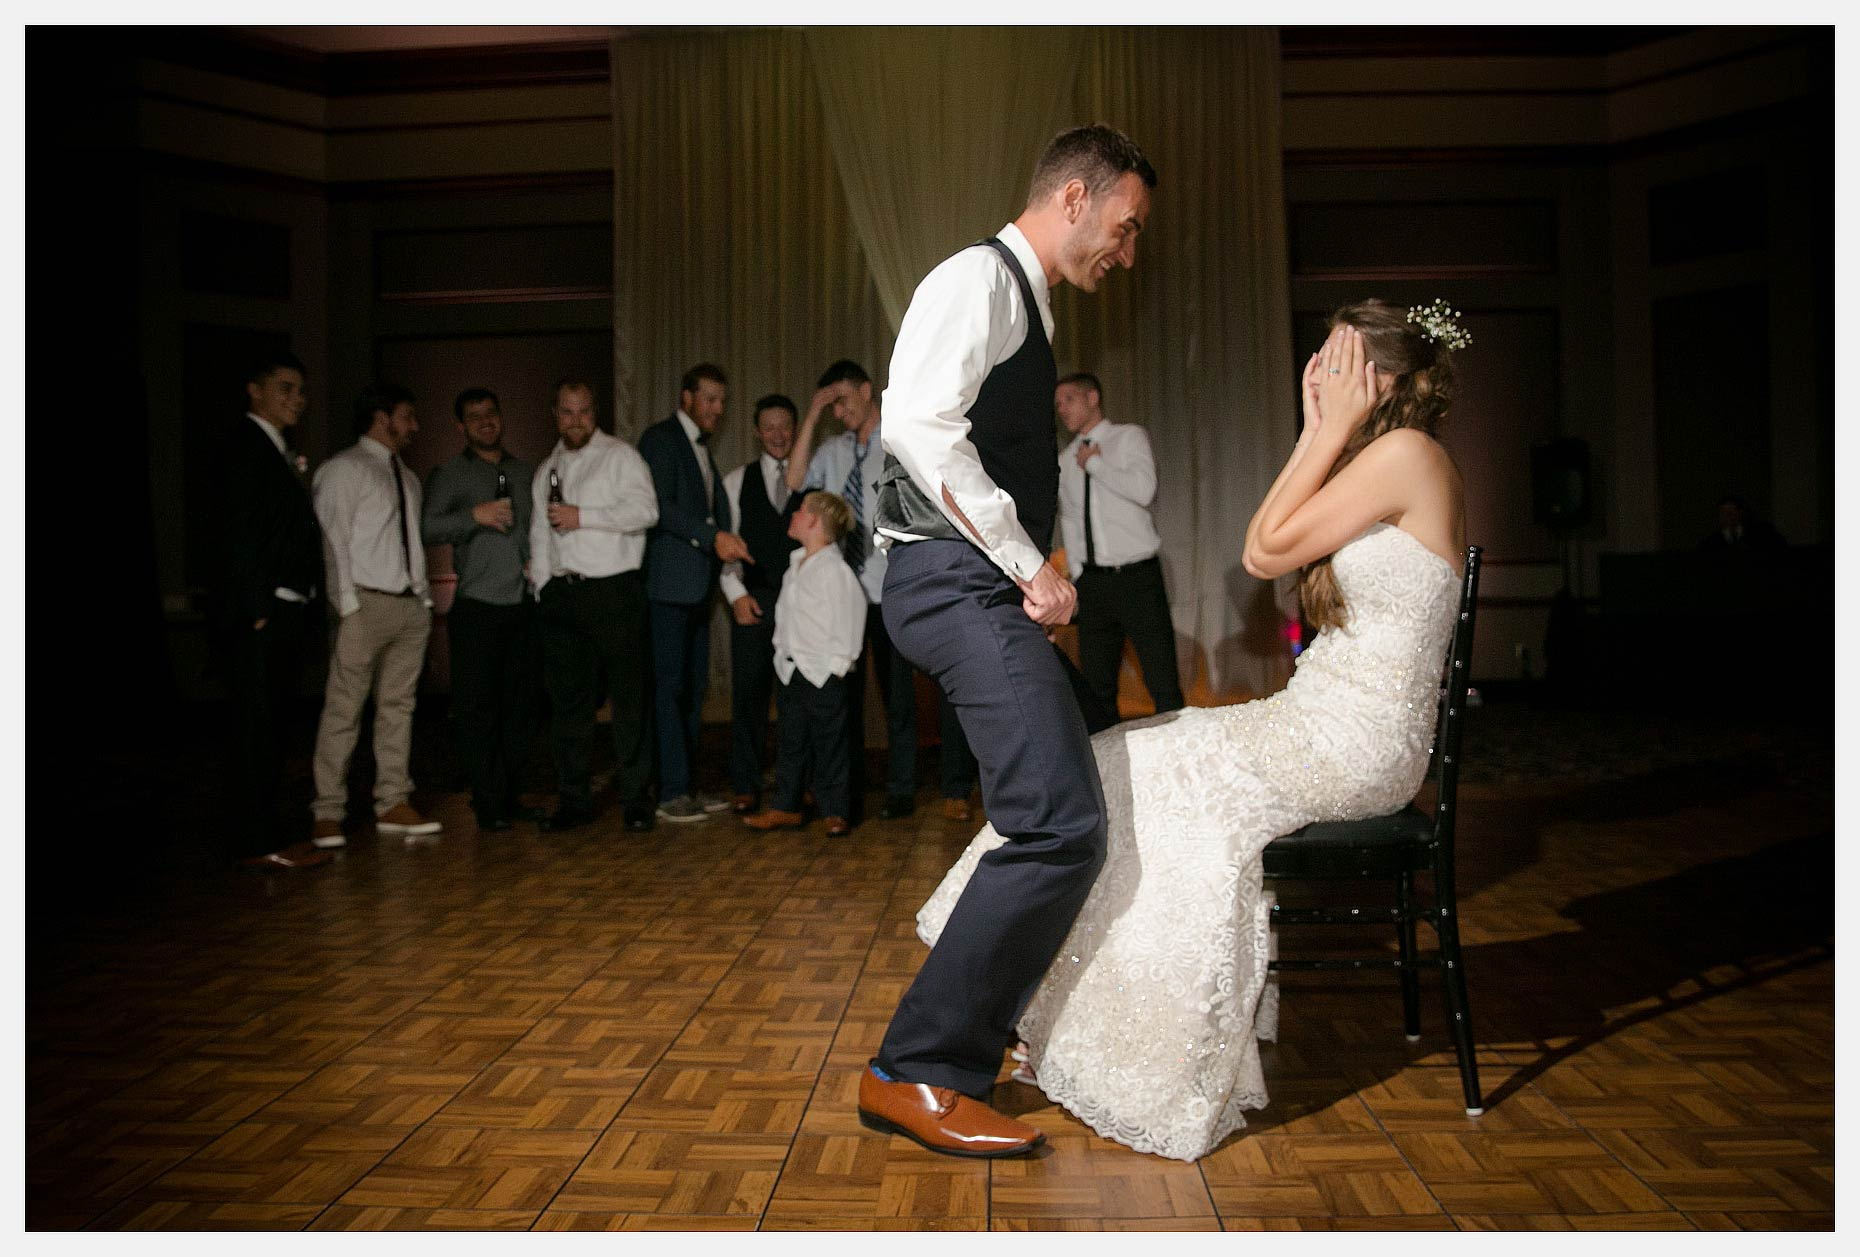 Madison-Carver-Wedding-by-Stephen-Masker-Photography-0150